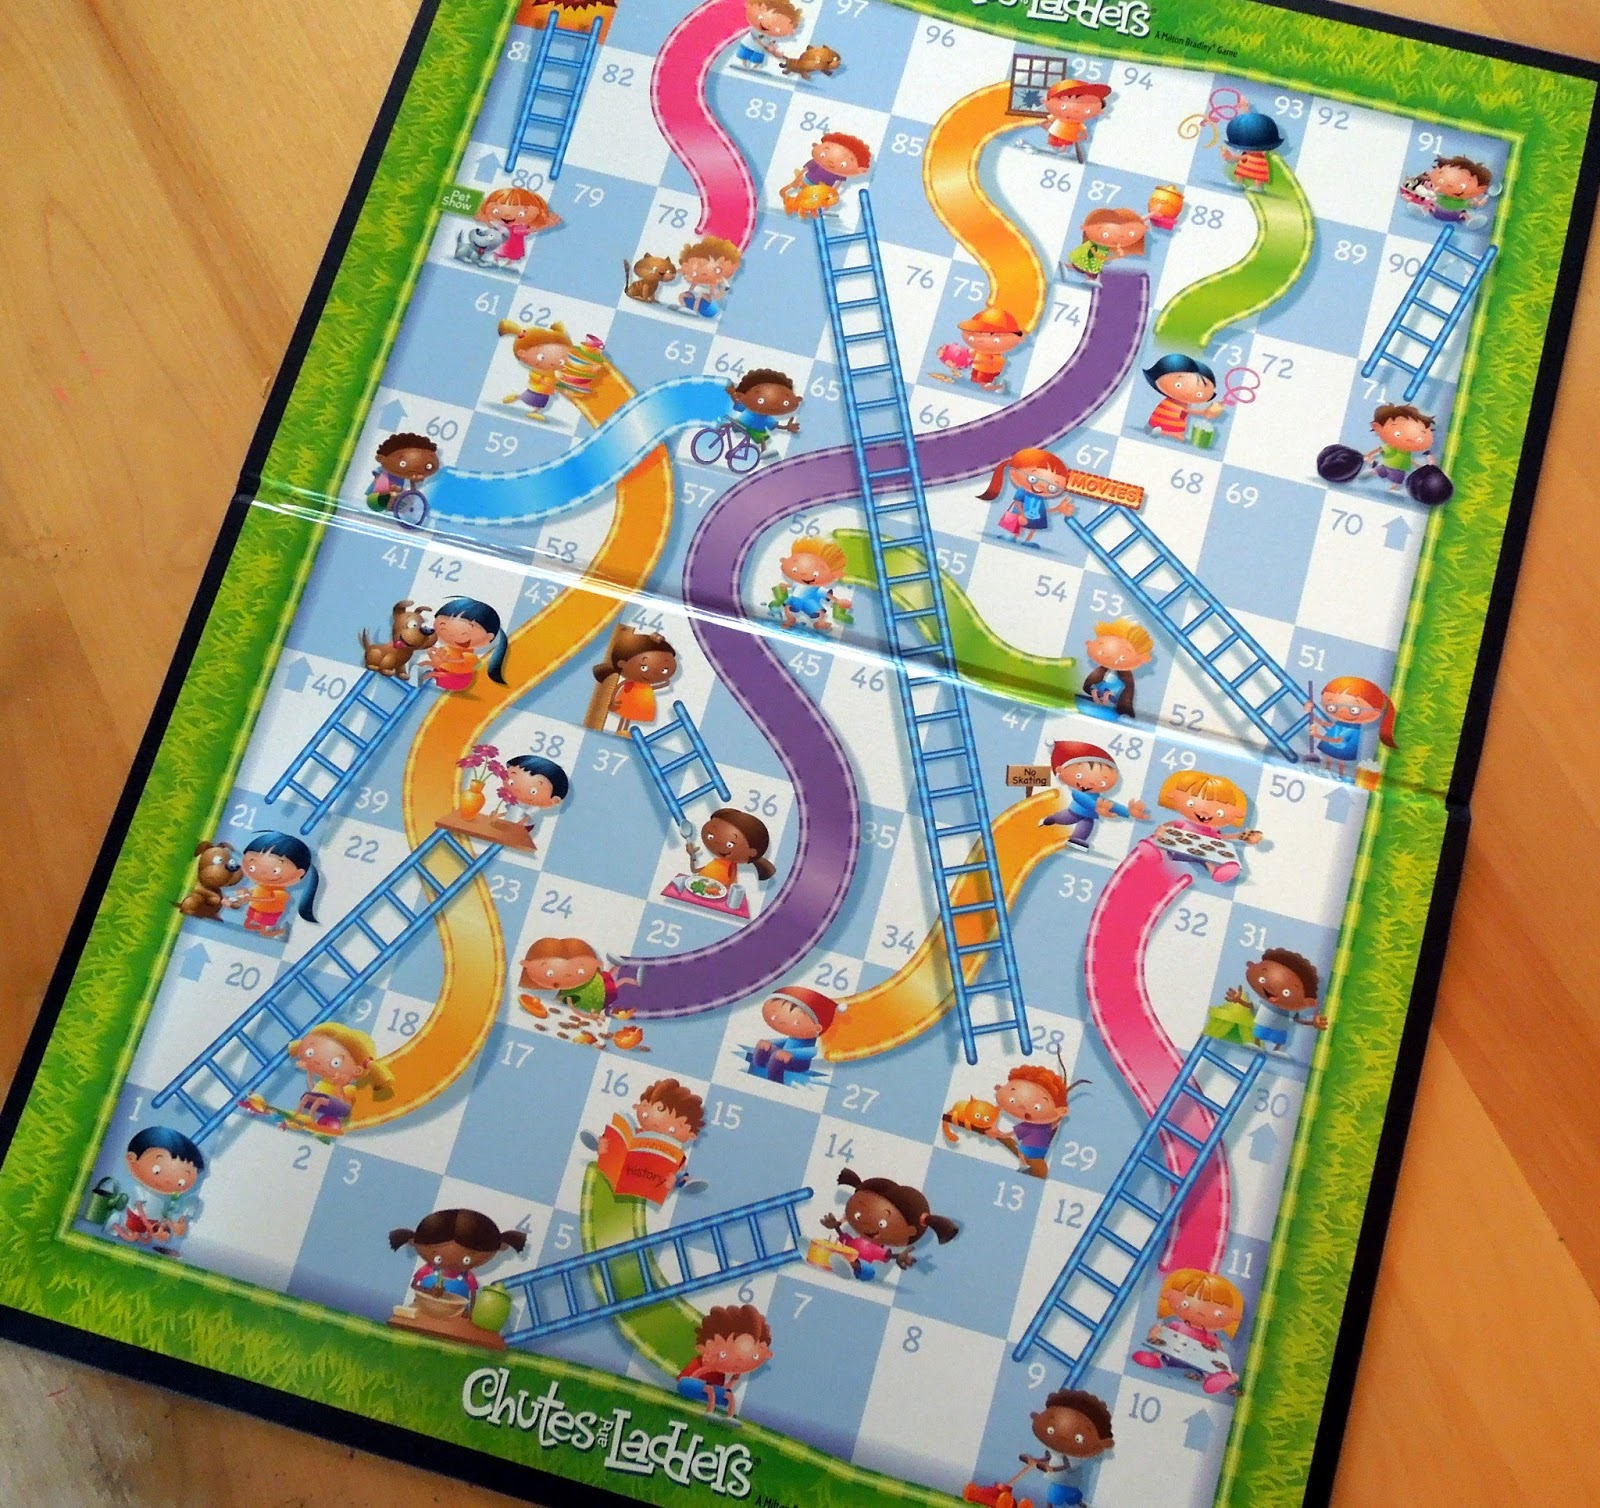 Creative Dream Journals: Chutes & Ladders as Metaphor for ...